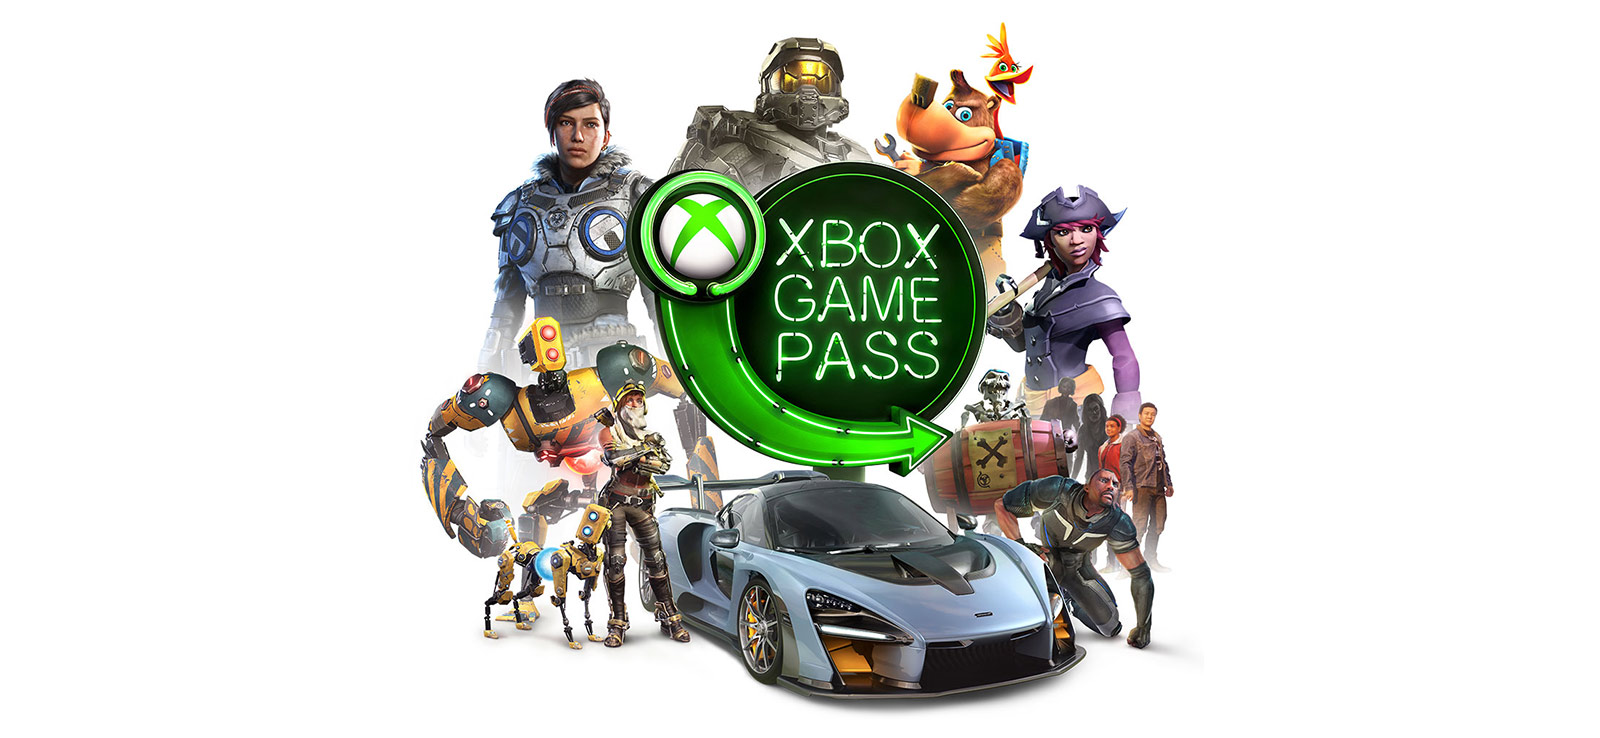 Xbox Game Pass logo surrounded by participating characters